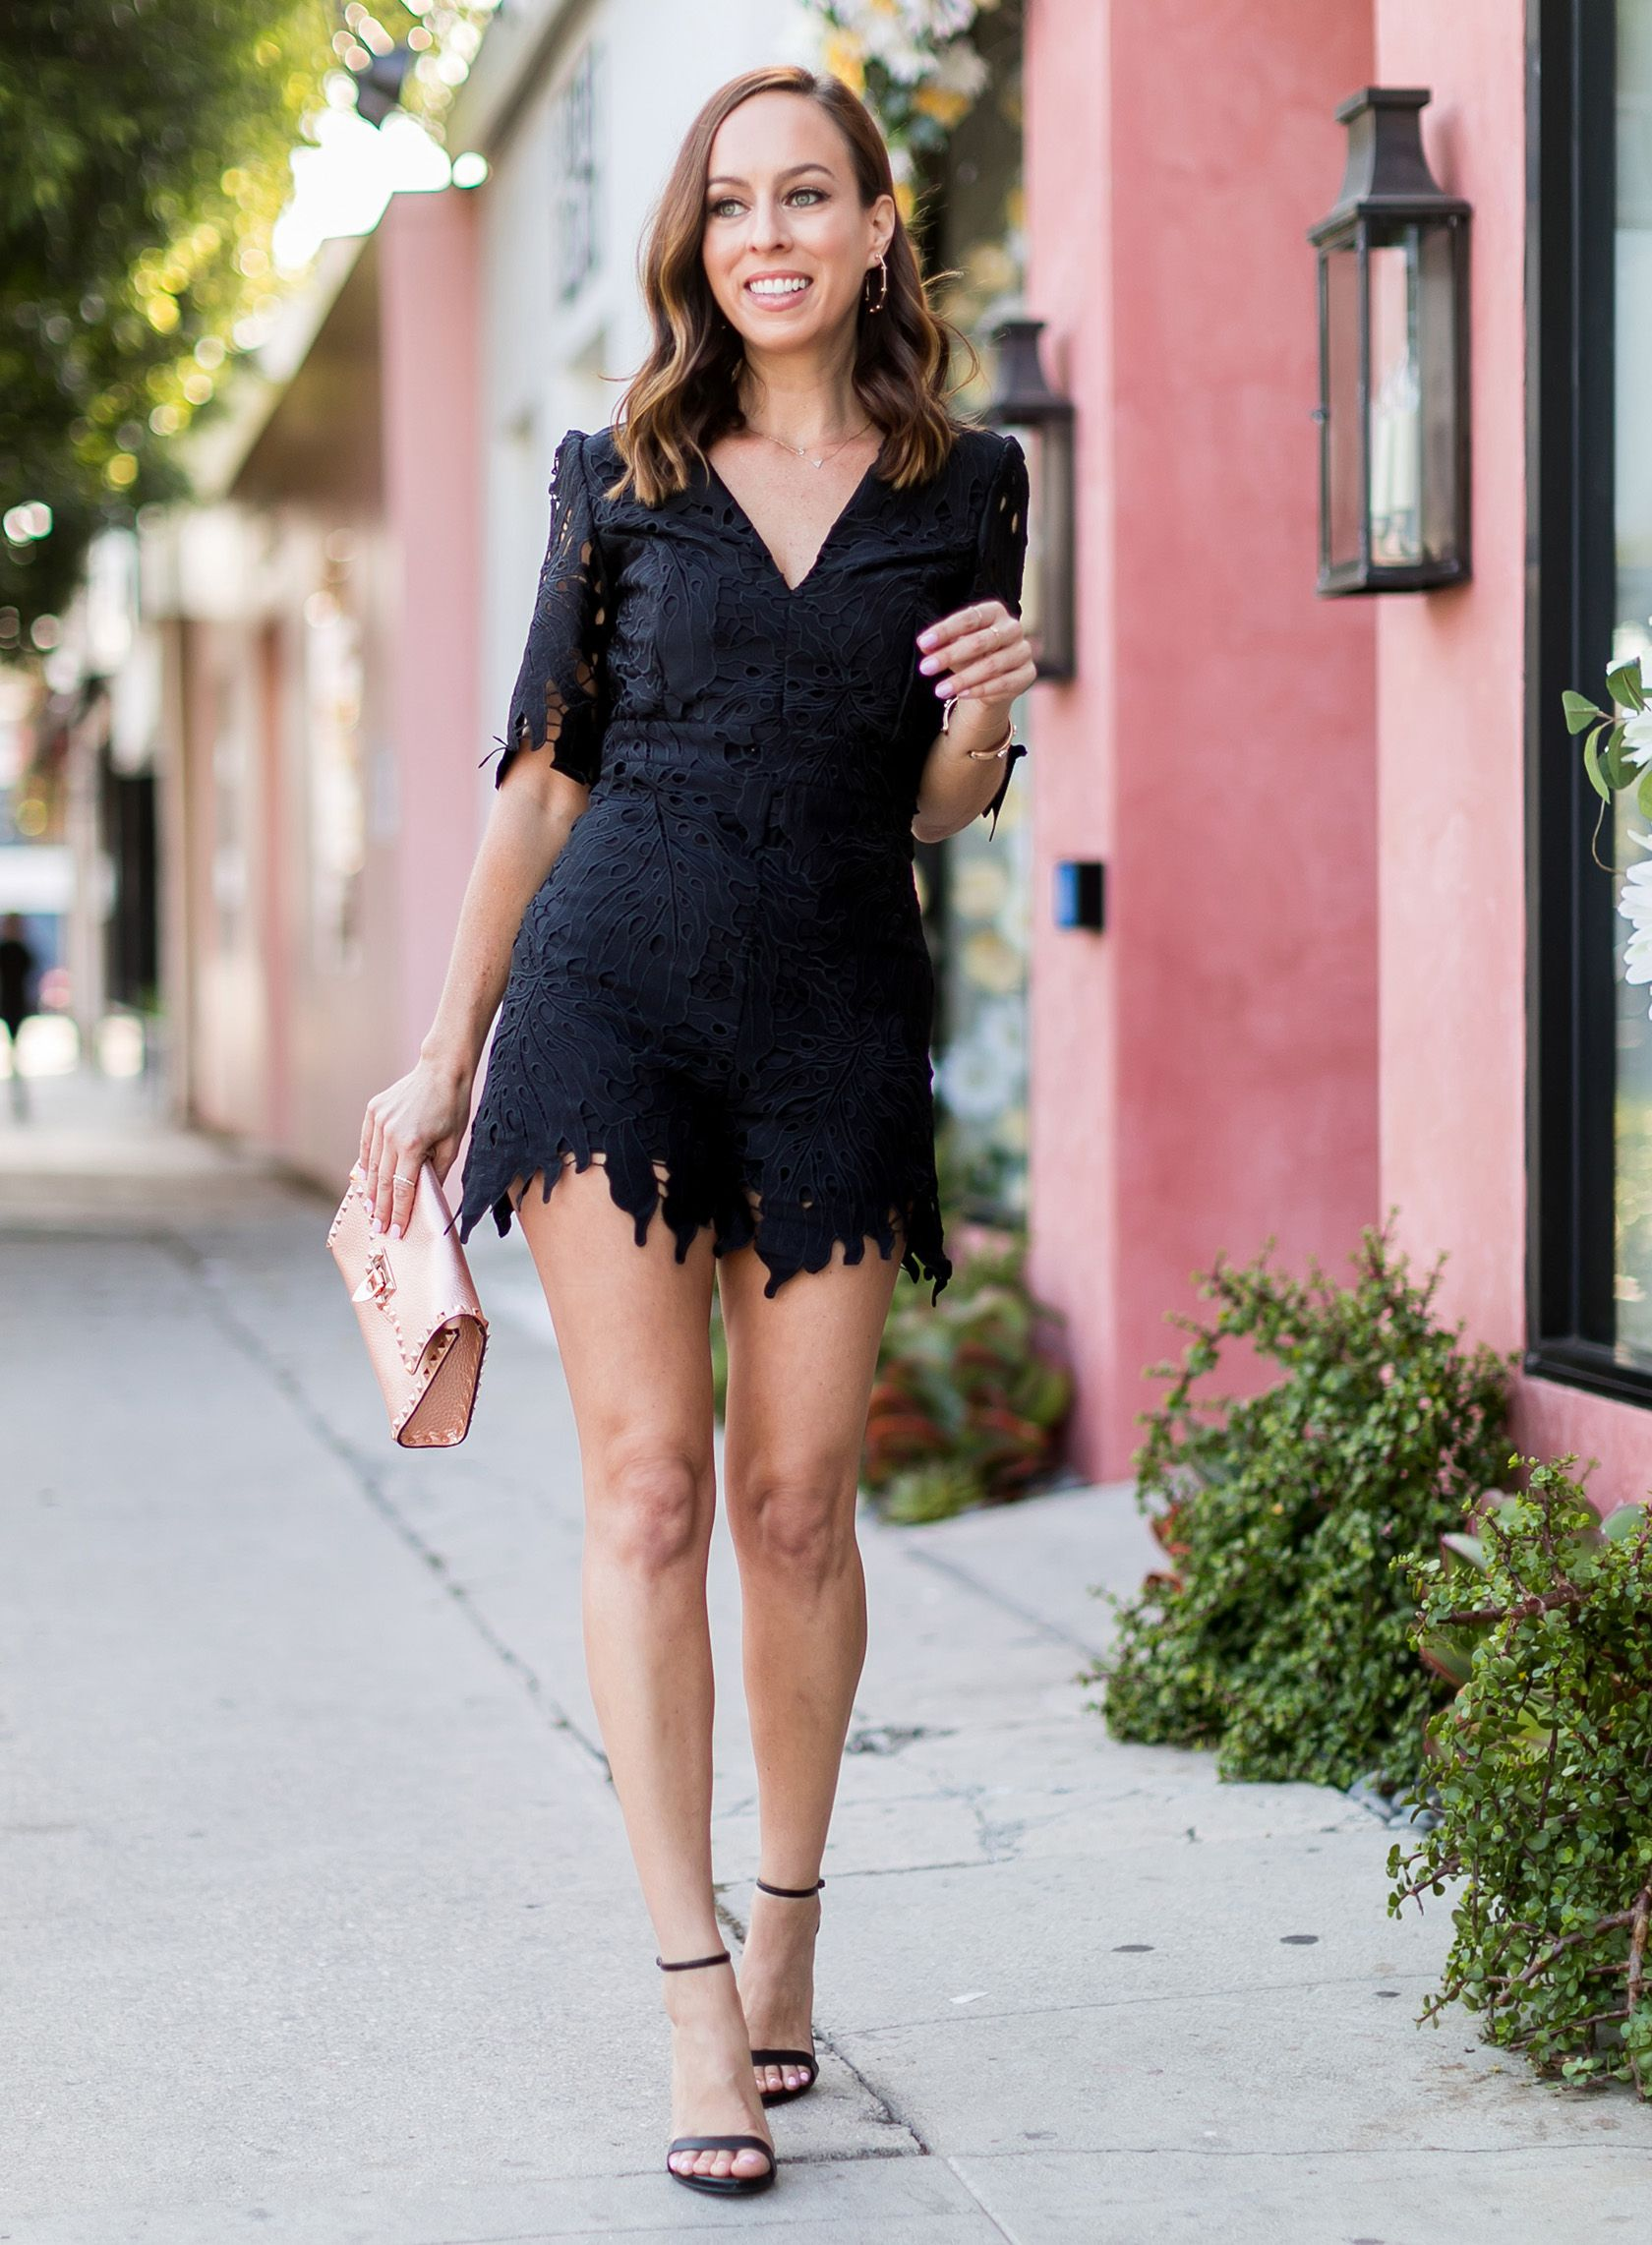 8b78b8ed3d51 Sydne Style wears bardot black lace romper for summer date night outfit  ideas  romper  lace  datenight  summeroutfits